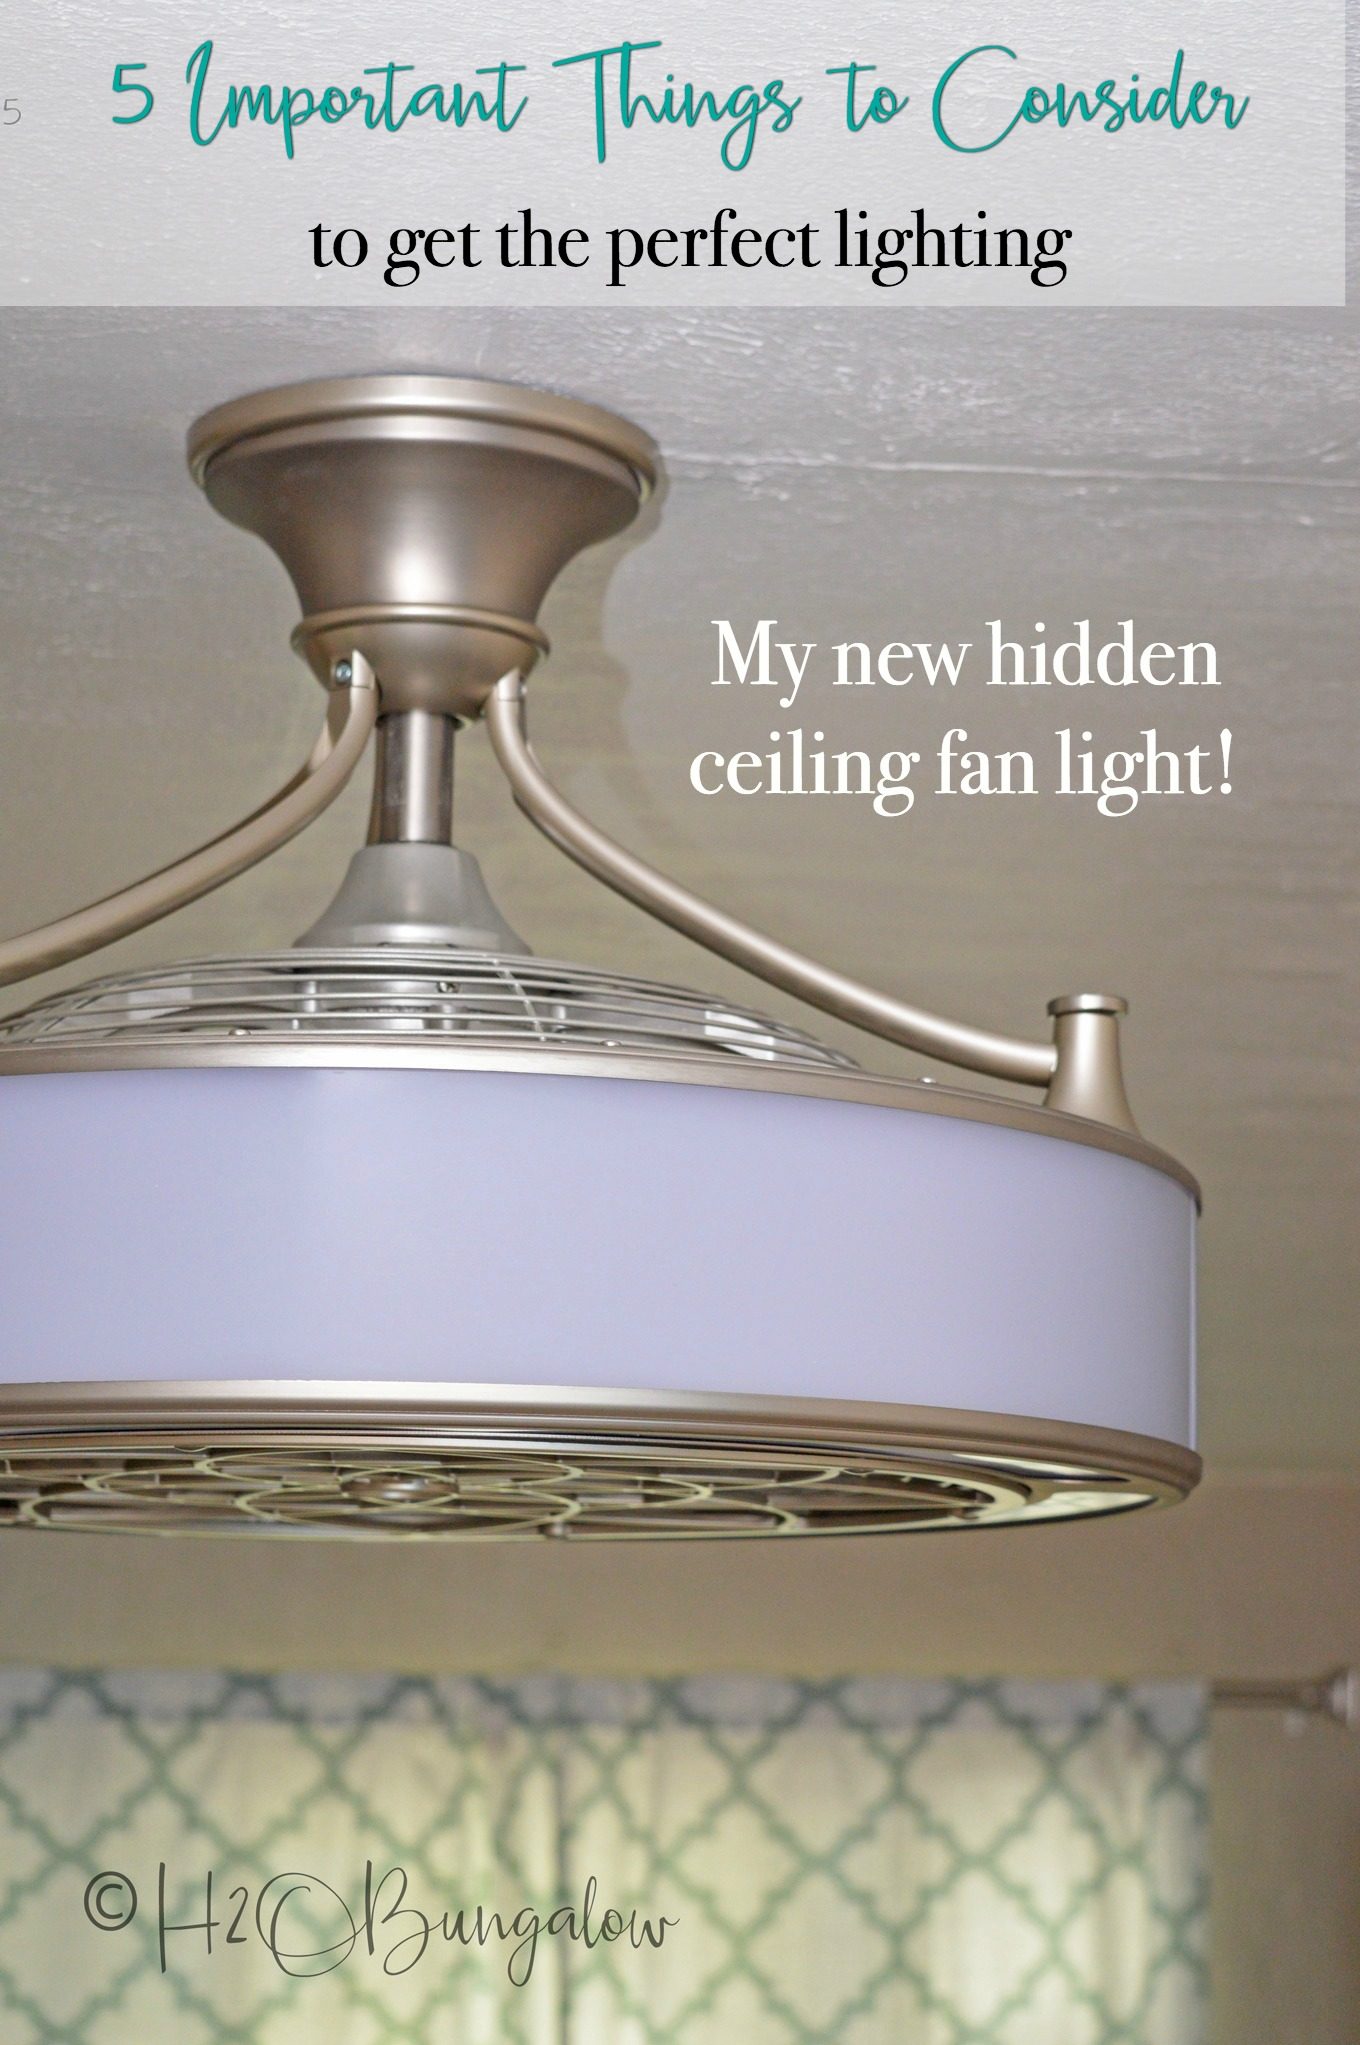 Five important things to consider before buying ceiling lights and fans. My top tips to think about before purchasing lighting and ceiling fans that will help you pick the right lighting and type of ceiling fan for your needs. I just installed a hidden ceiling fan light with 360 degree lighting for my office!